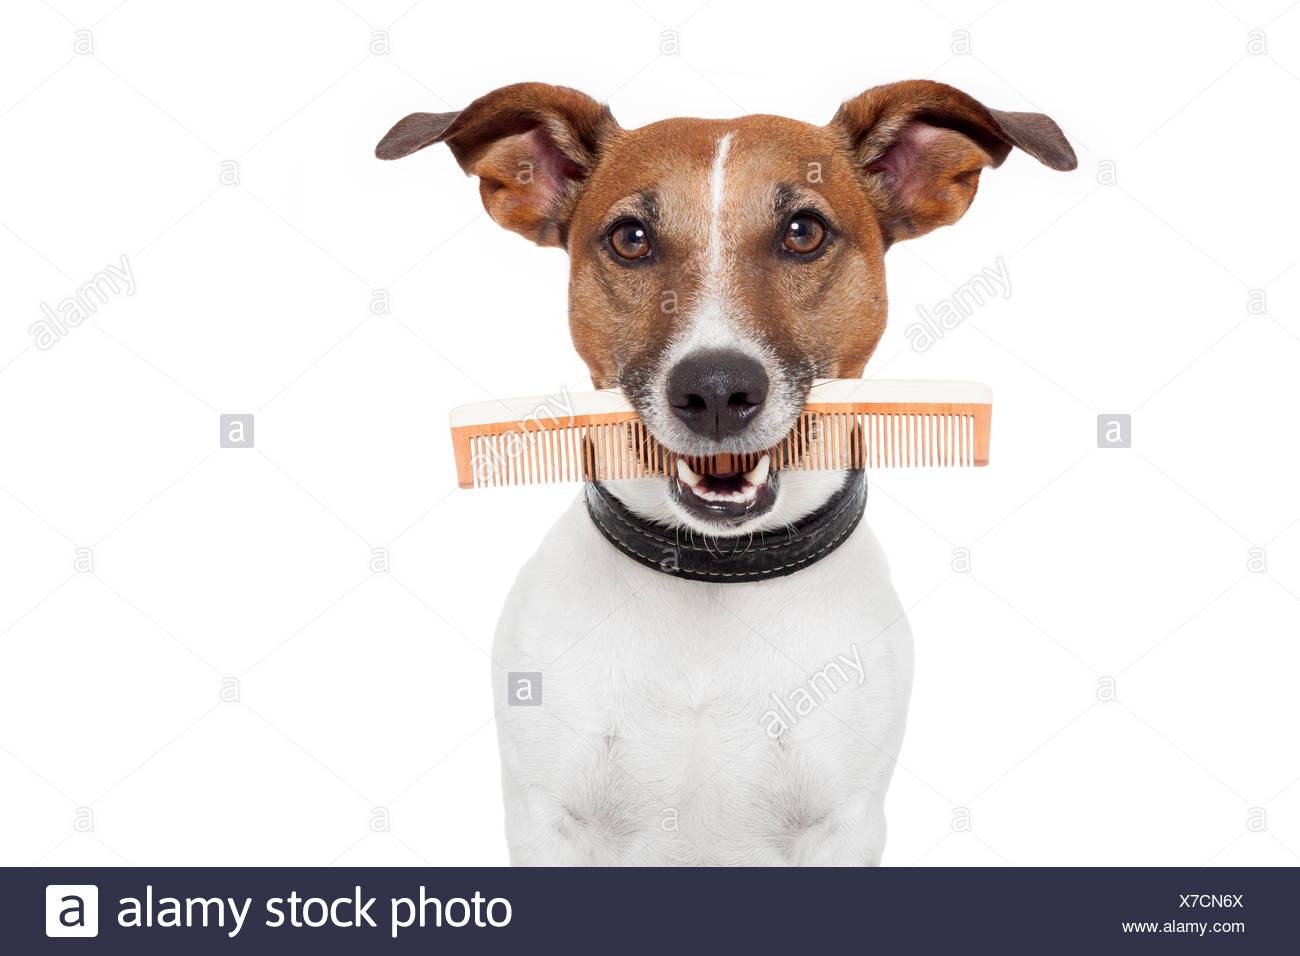 dog with comb - Stock Image